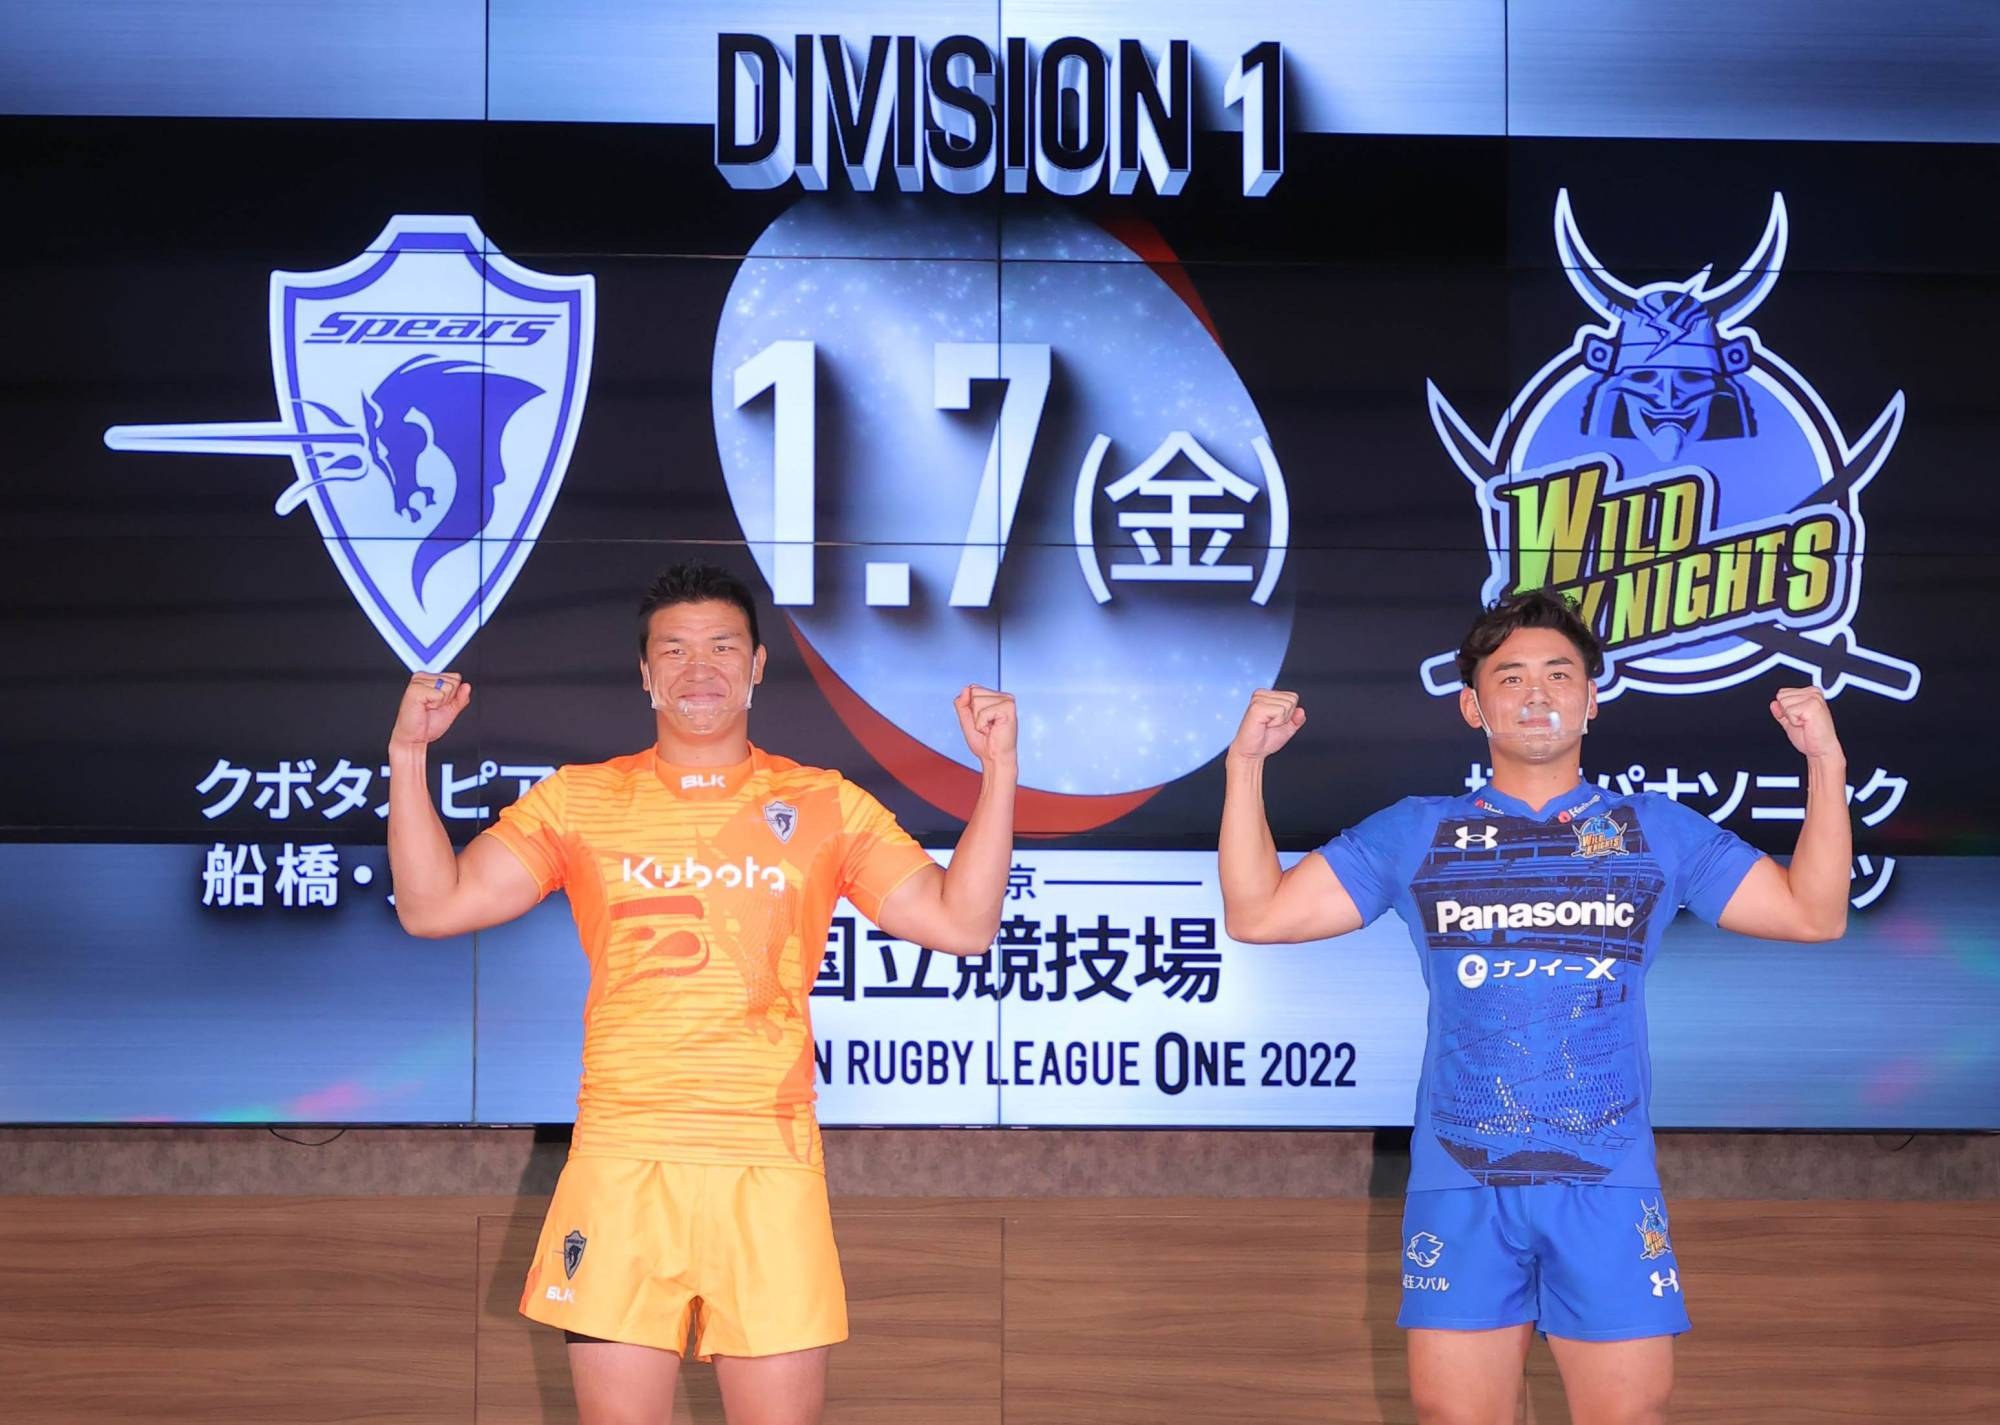 Kubota Spears and the Panasonic Wild Knights will meet in the opening game of the new Japan Rugby League One on Jan. 7.   HANDOUT / VIA REUTERS